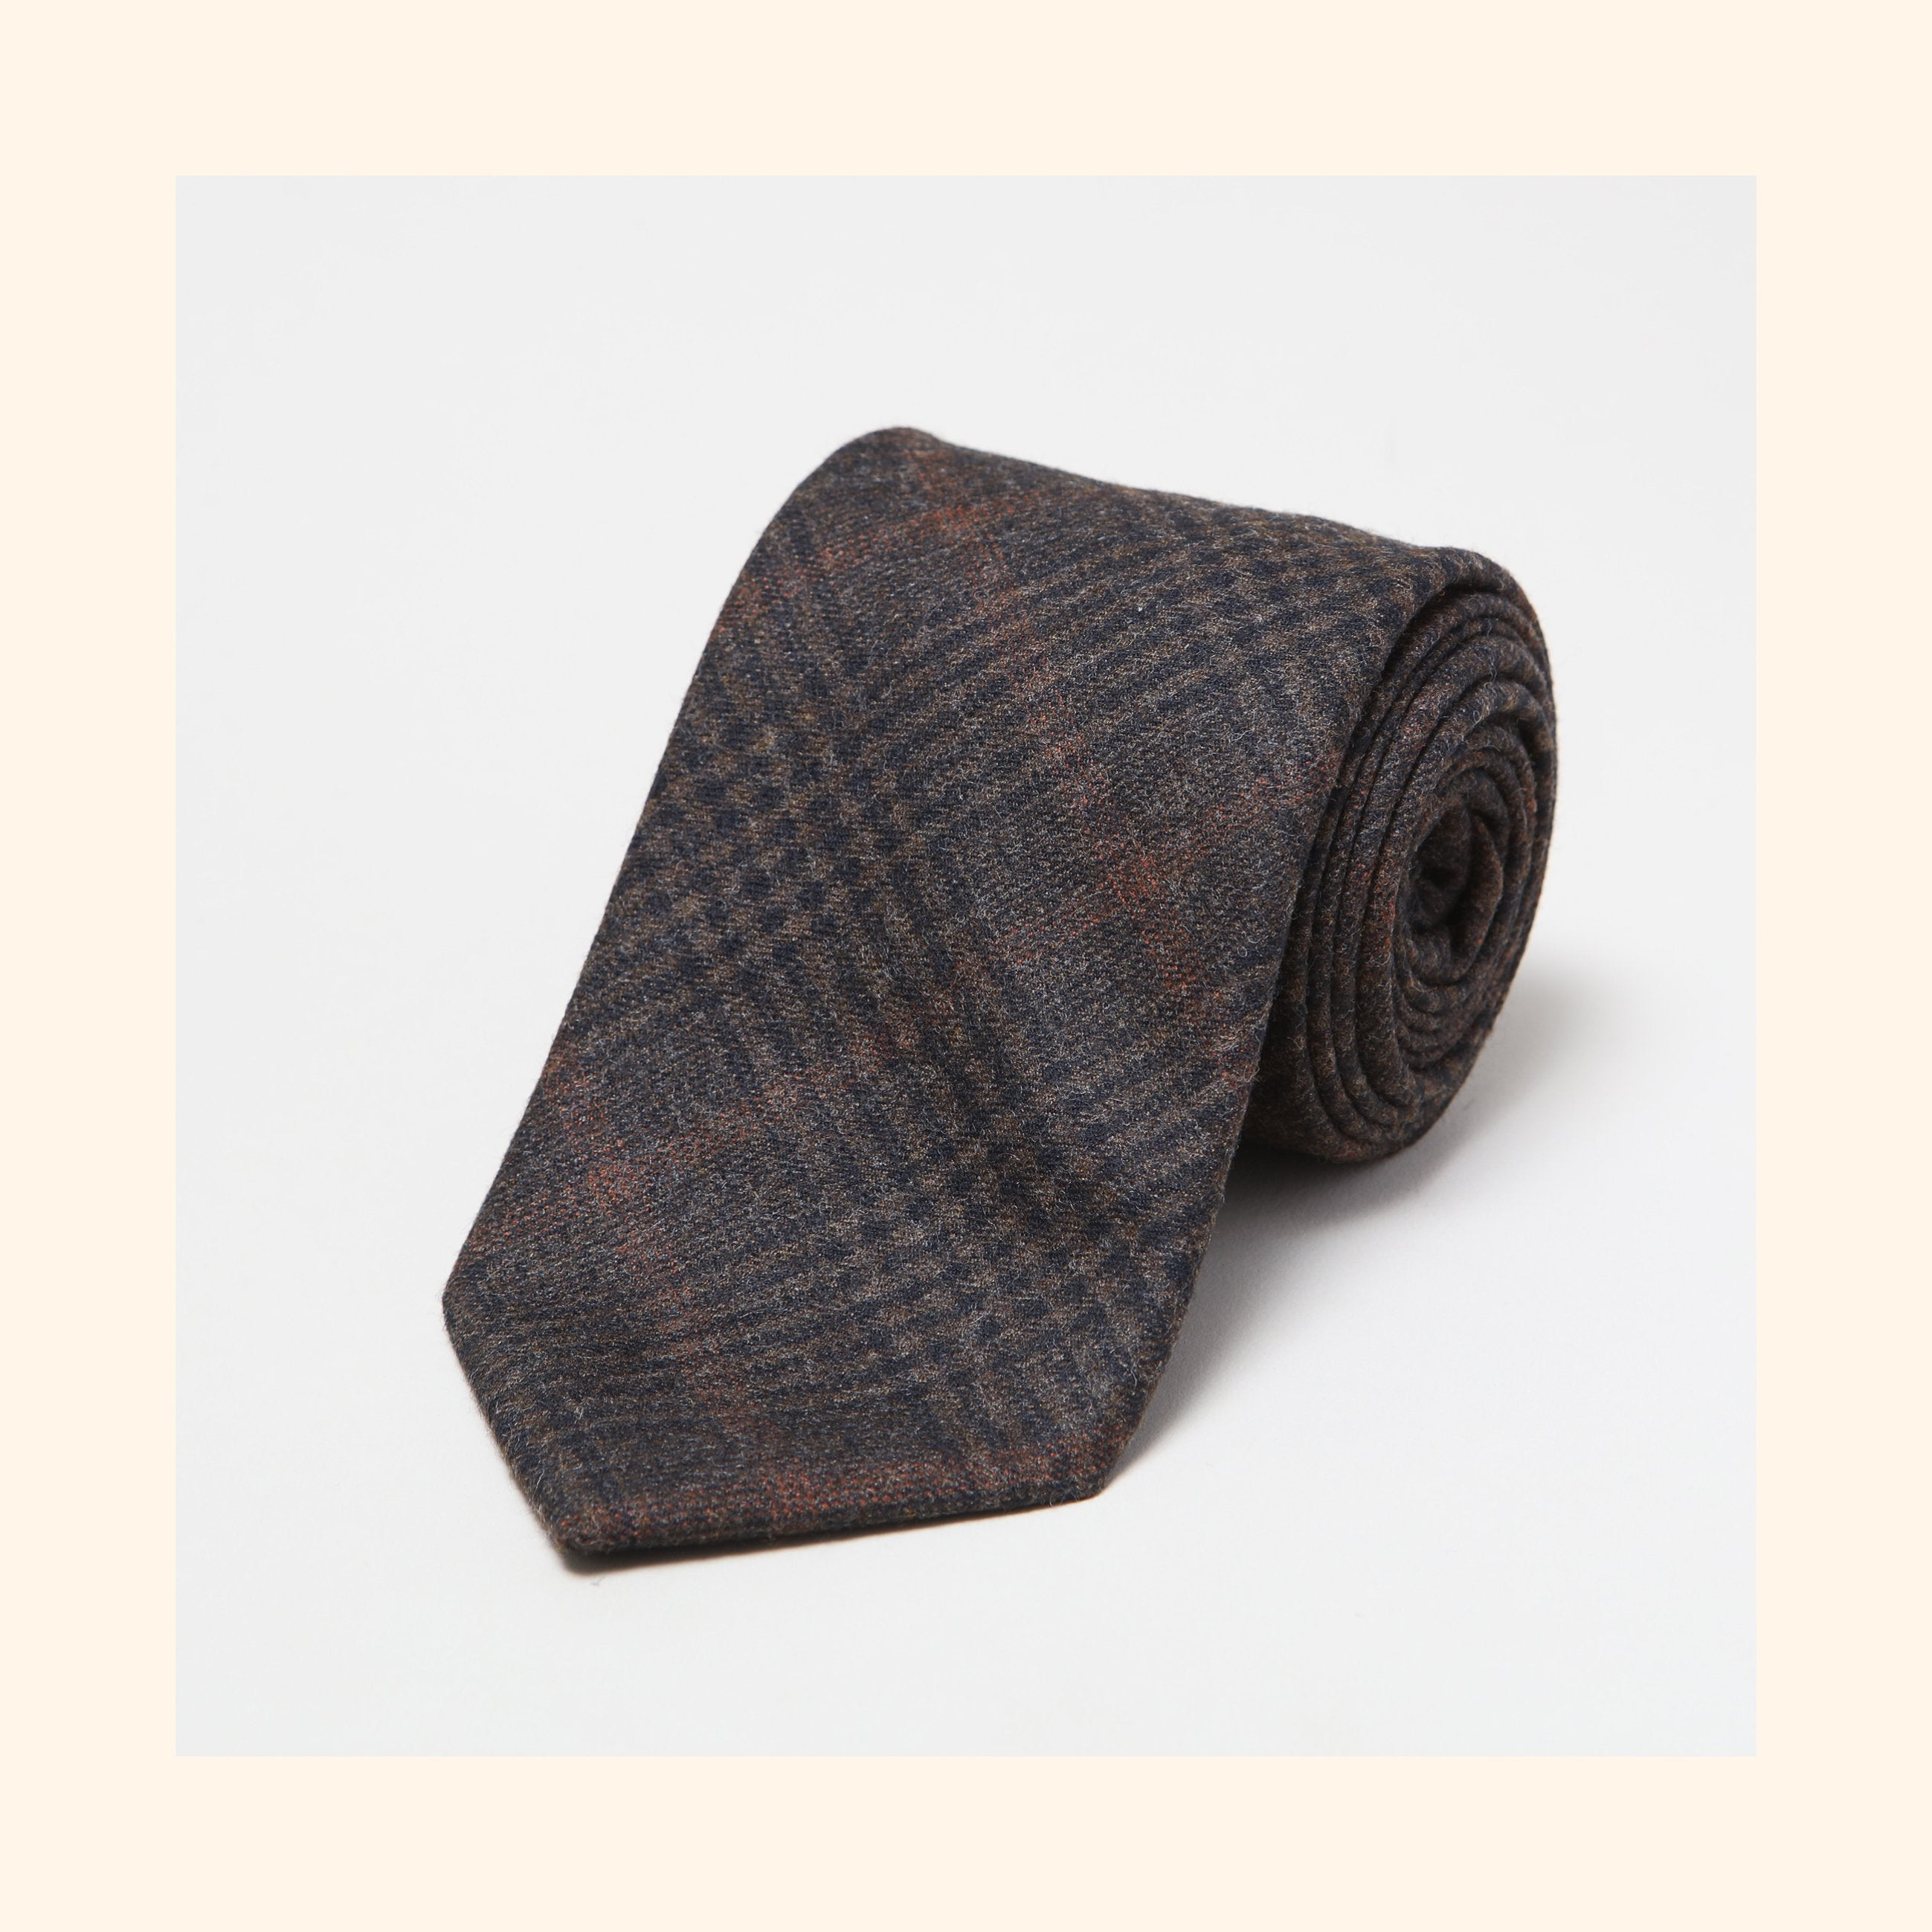 № 150 - Fox Brothers Chocolate Brown Prince of Wales Glen Check Pure Wool Tie